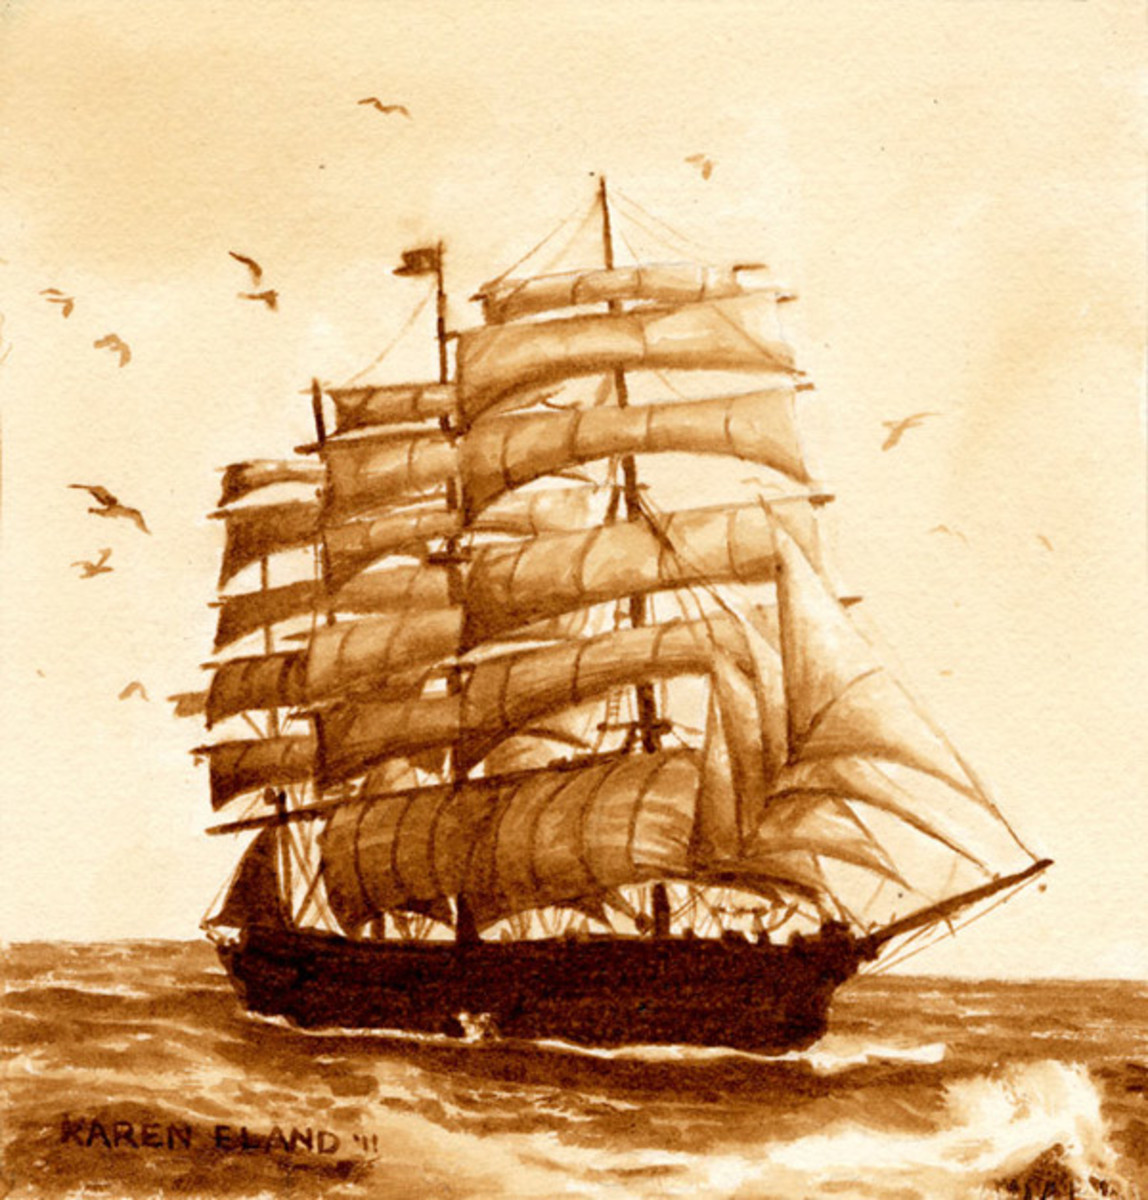 Ancient ship watercolor painting with coffee